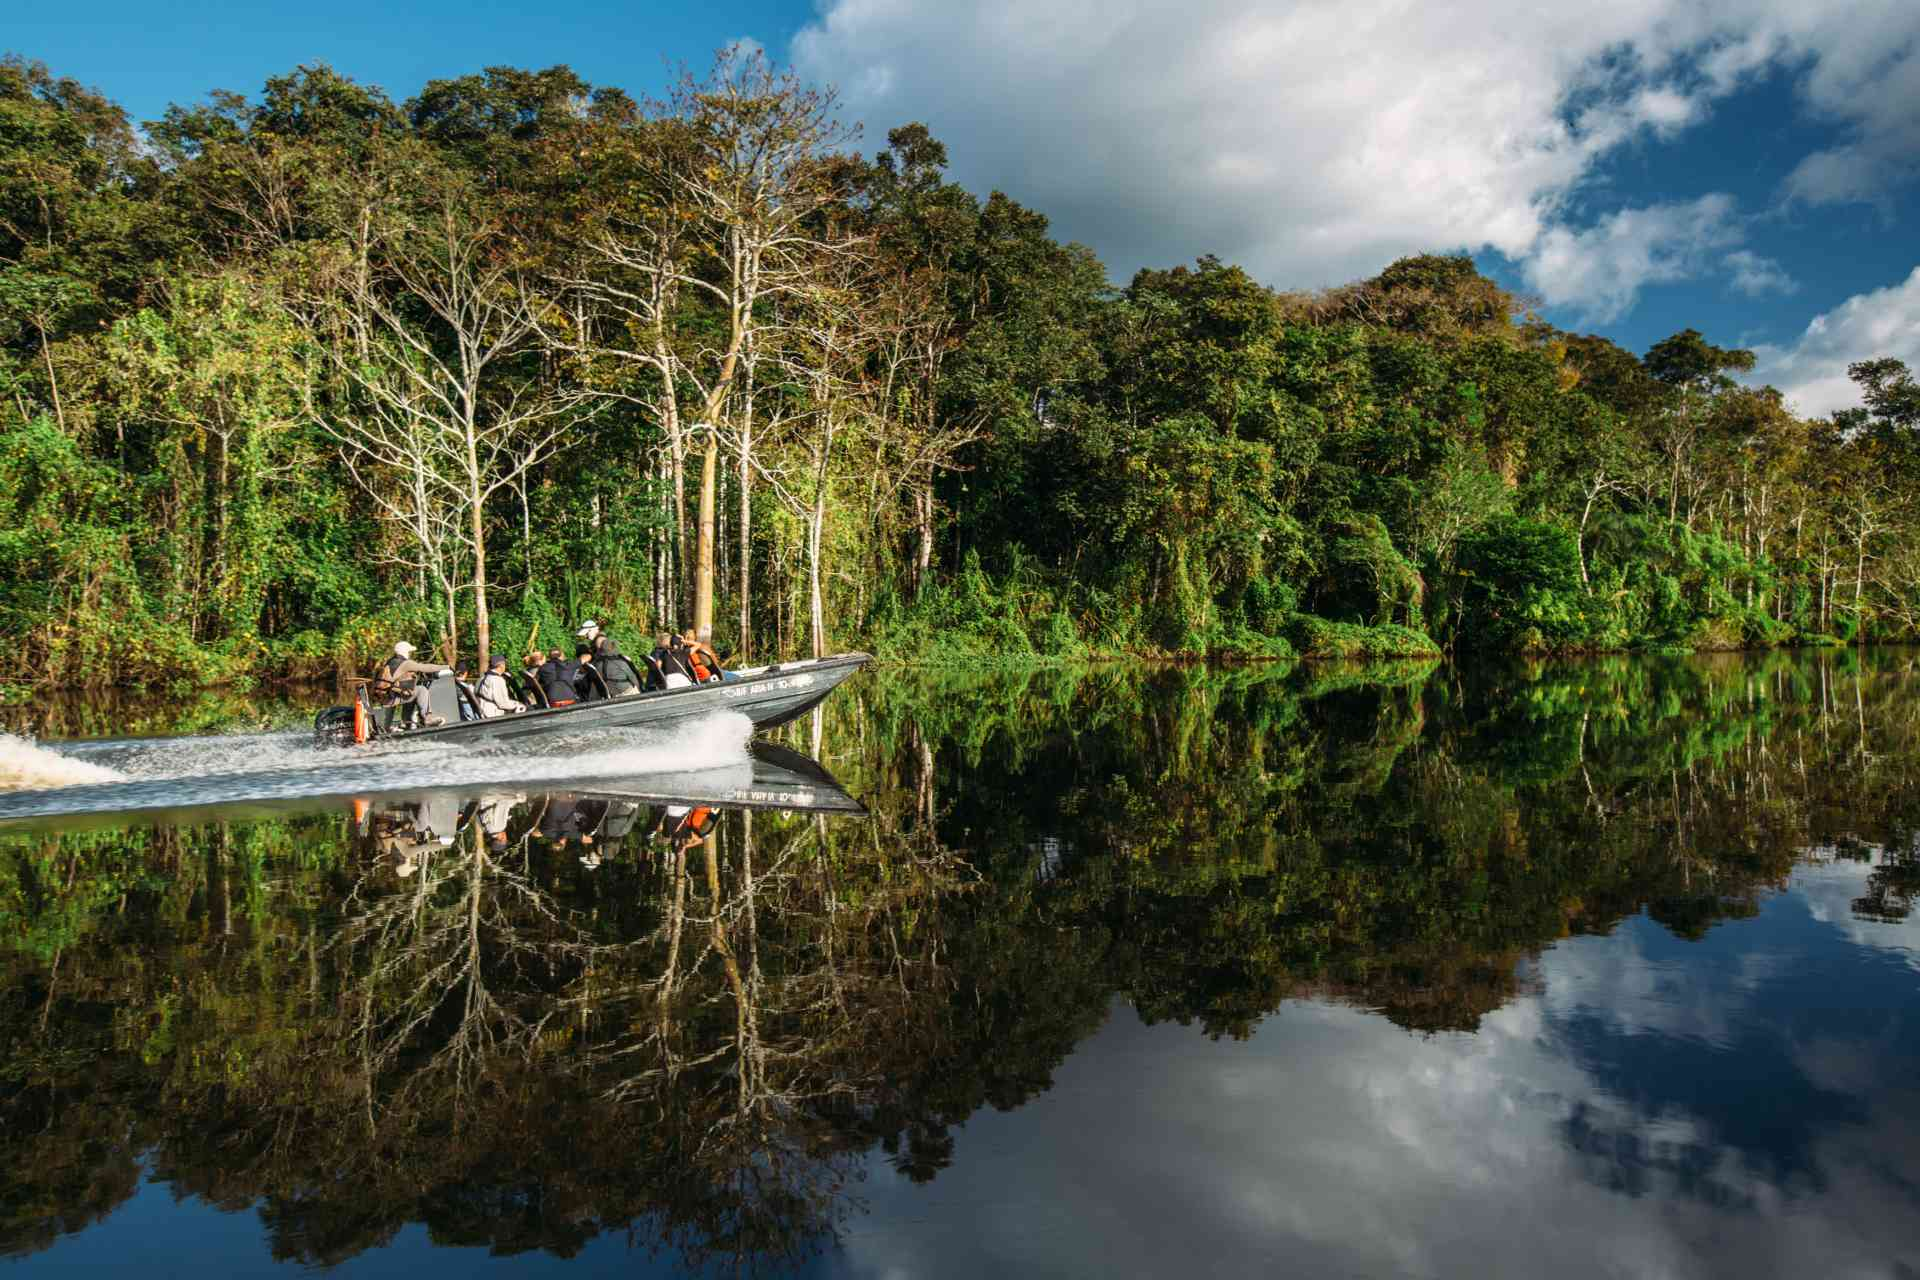 Amazon skiff excursions, Peru by Aqua Expeditions